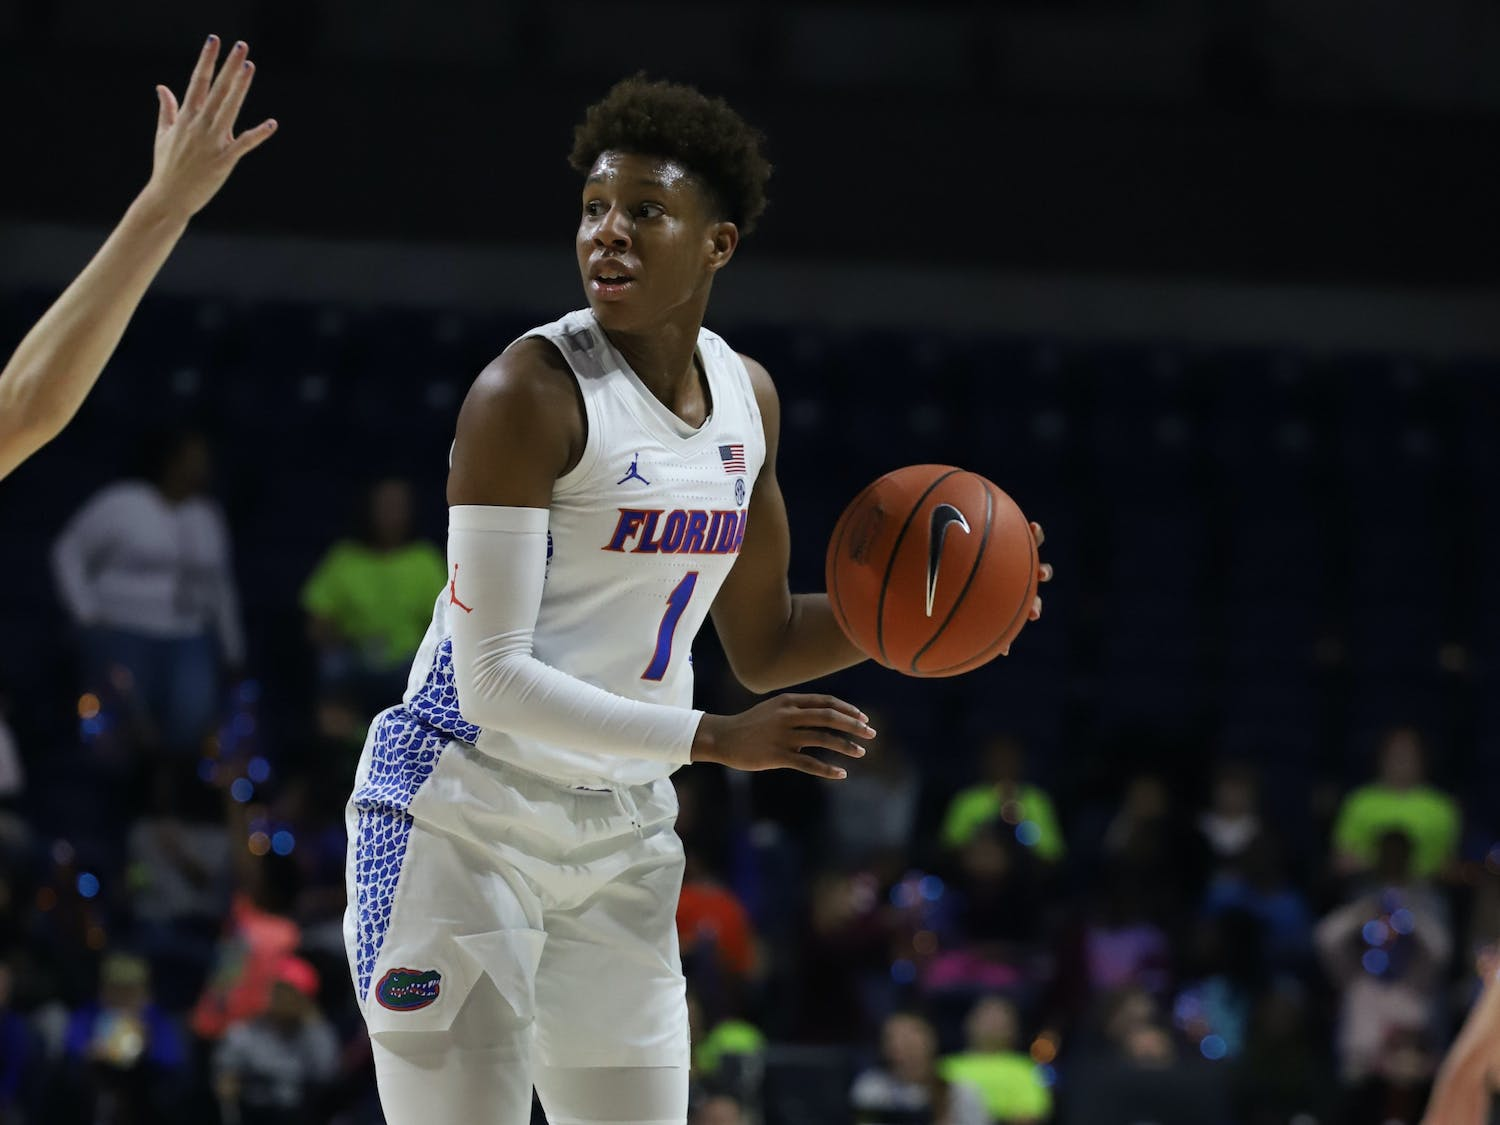 Florida guard Kiara Smith drained the first basket in the Gators' game against the FAU Owls Monday.